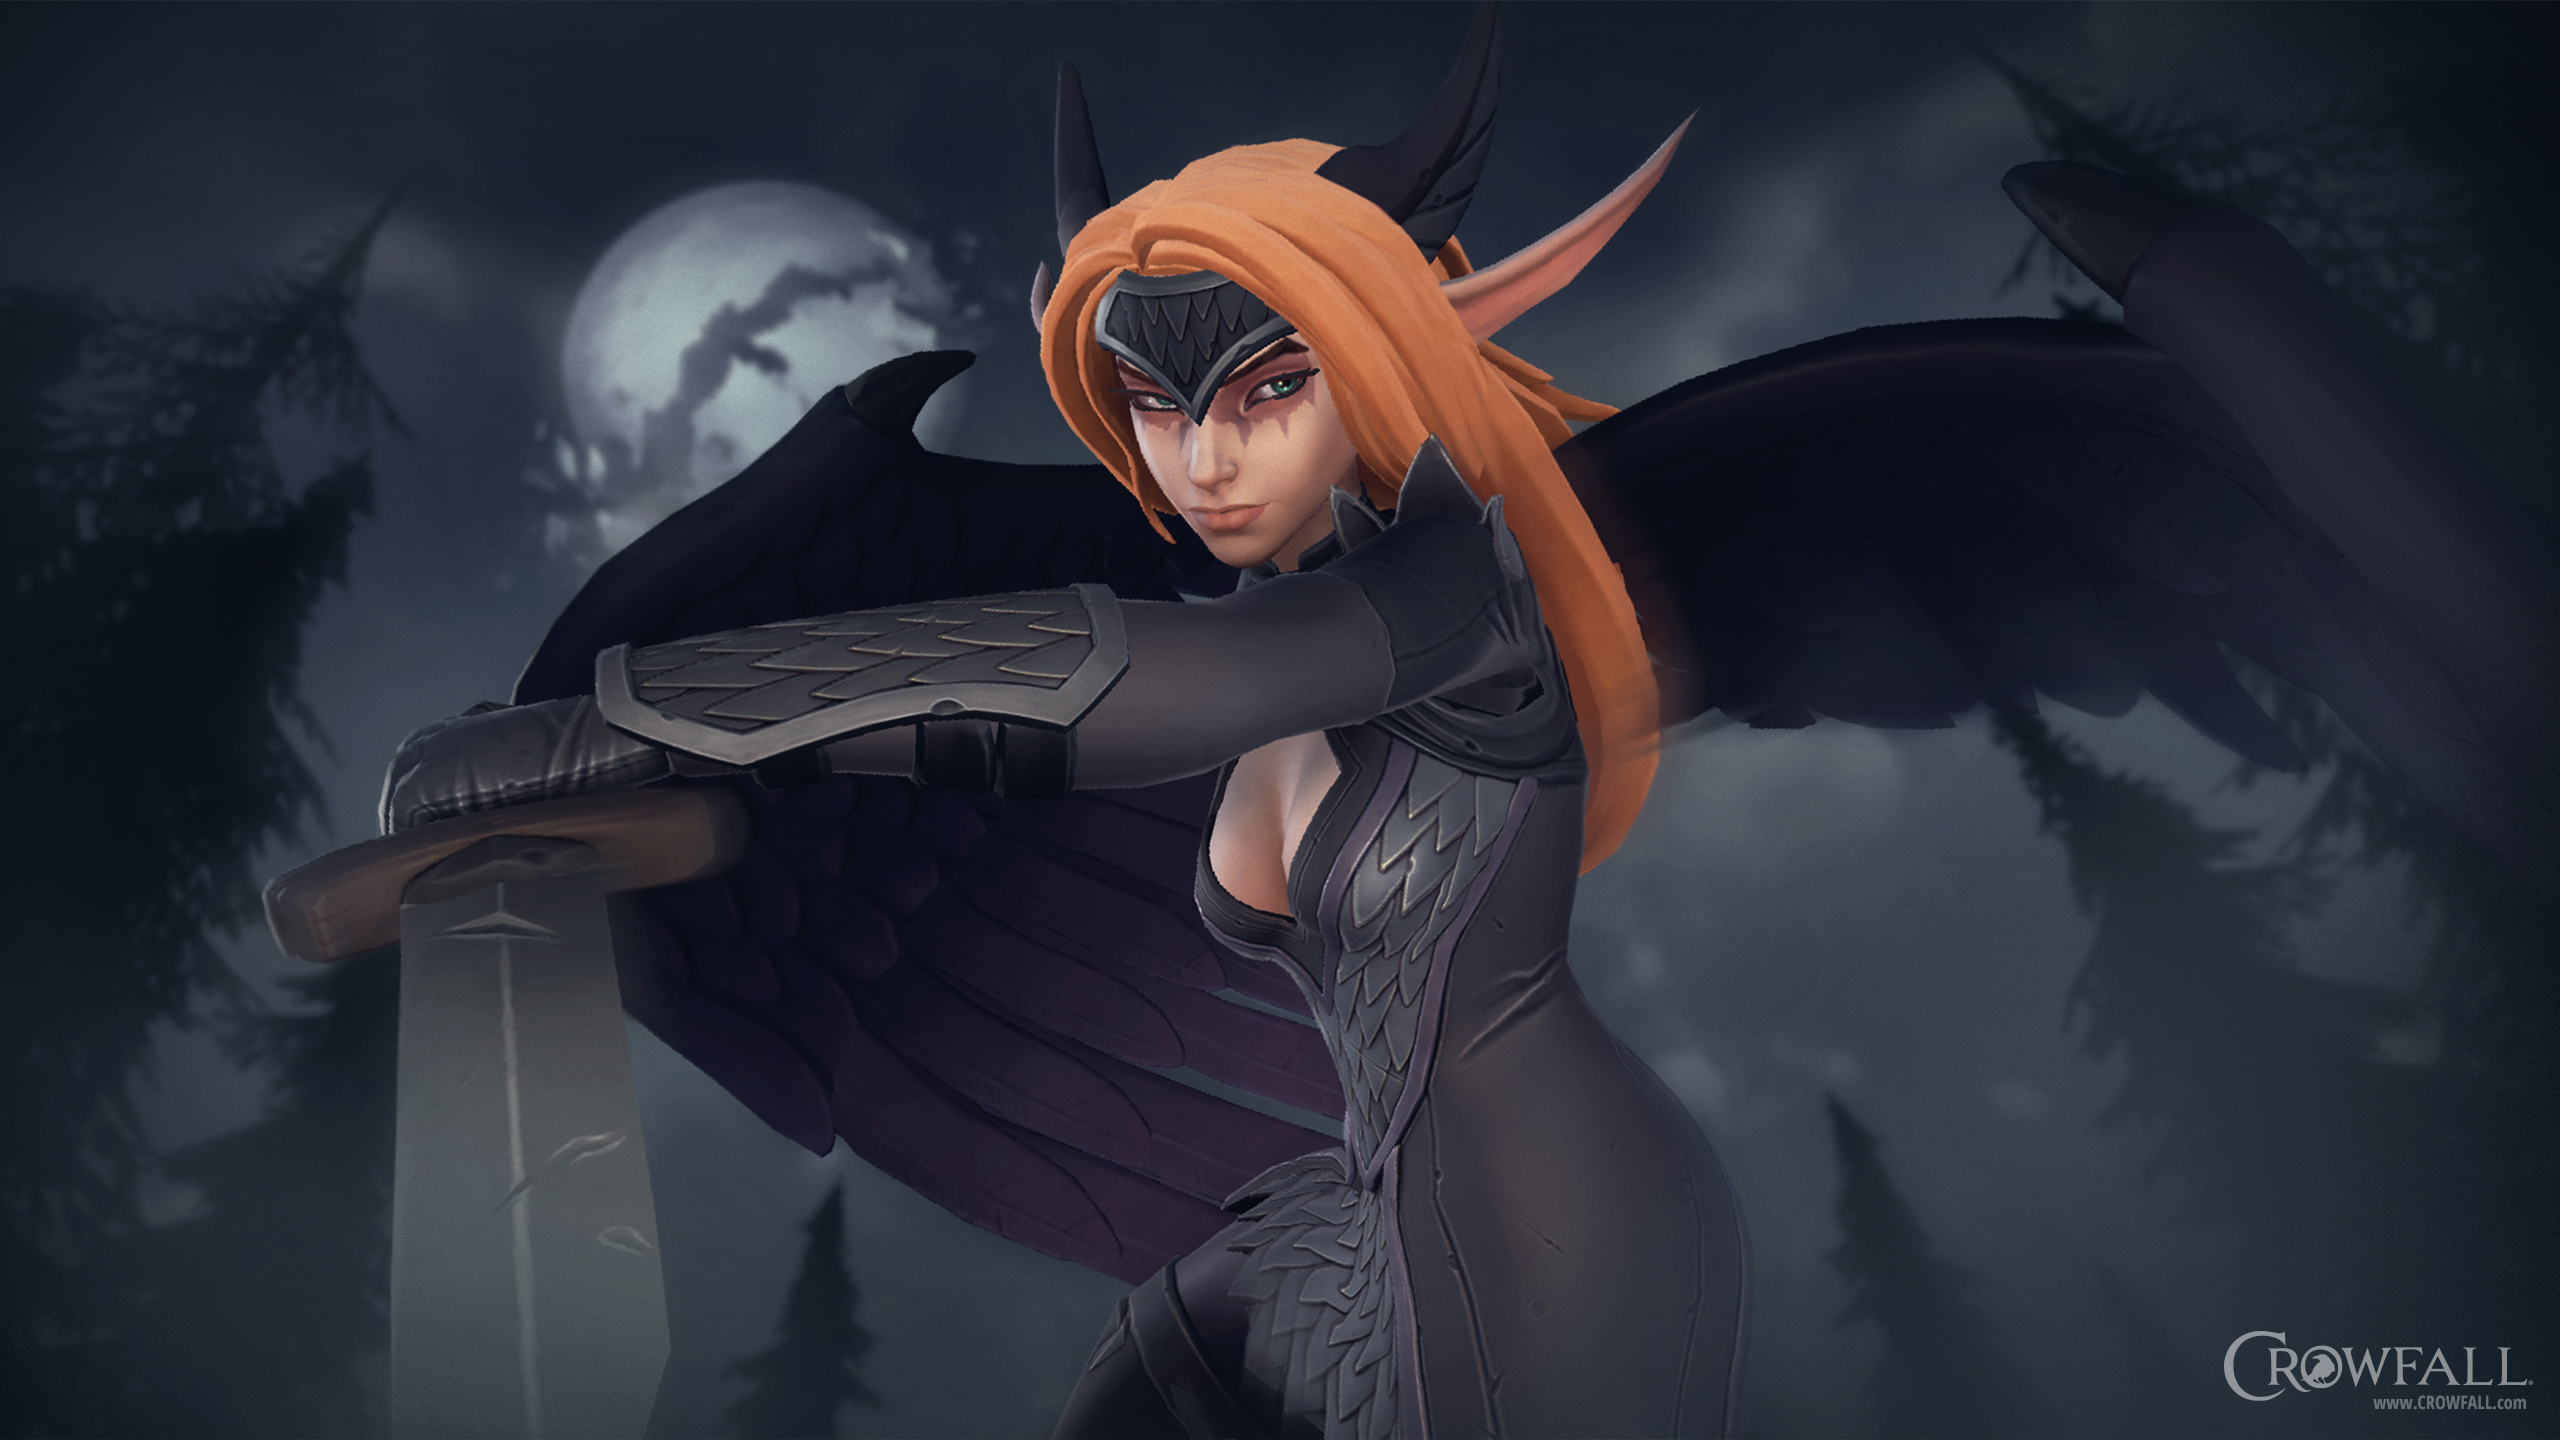 Nightstalker - Crowfall wallpaper - 2560x1440